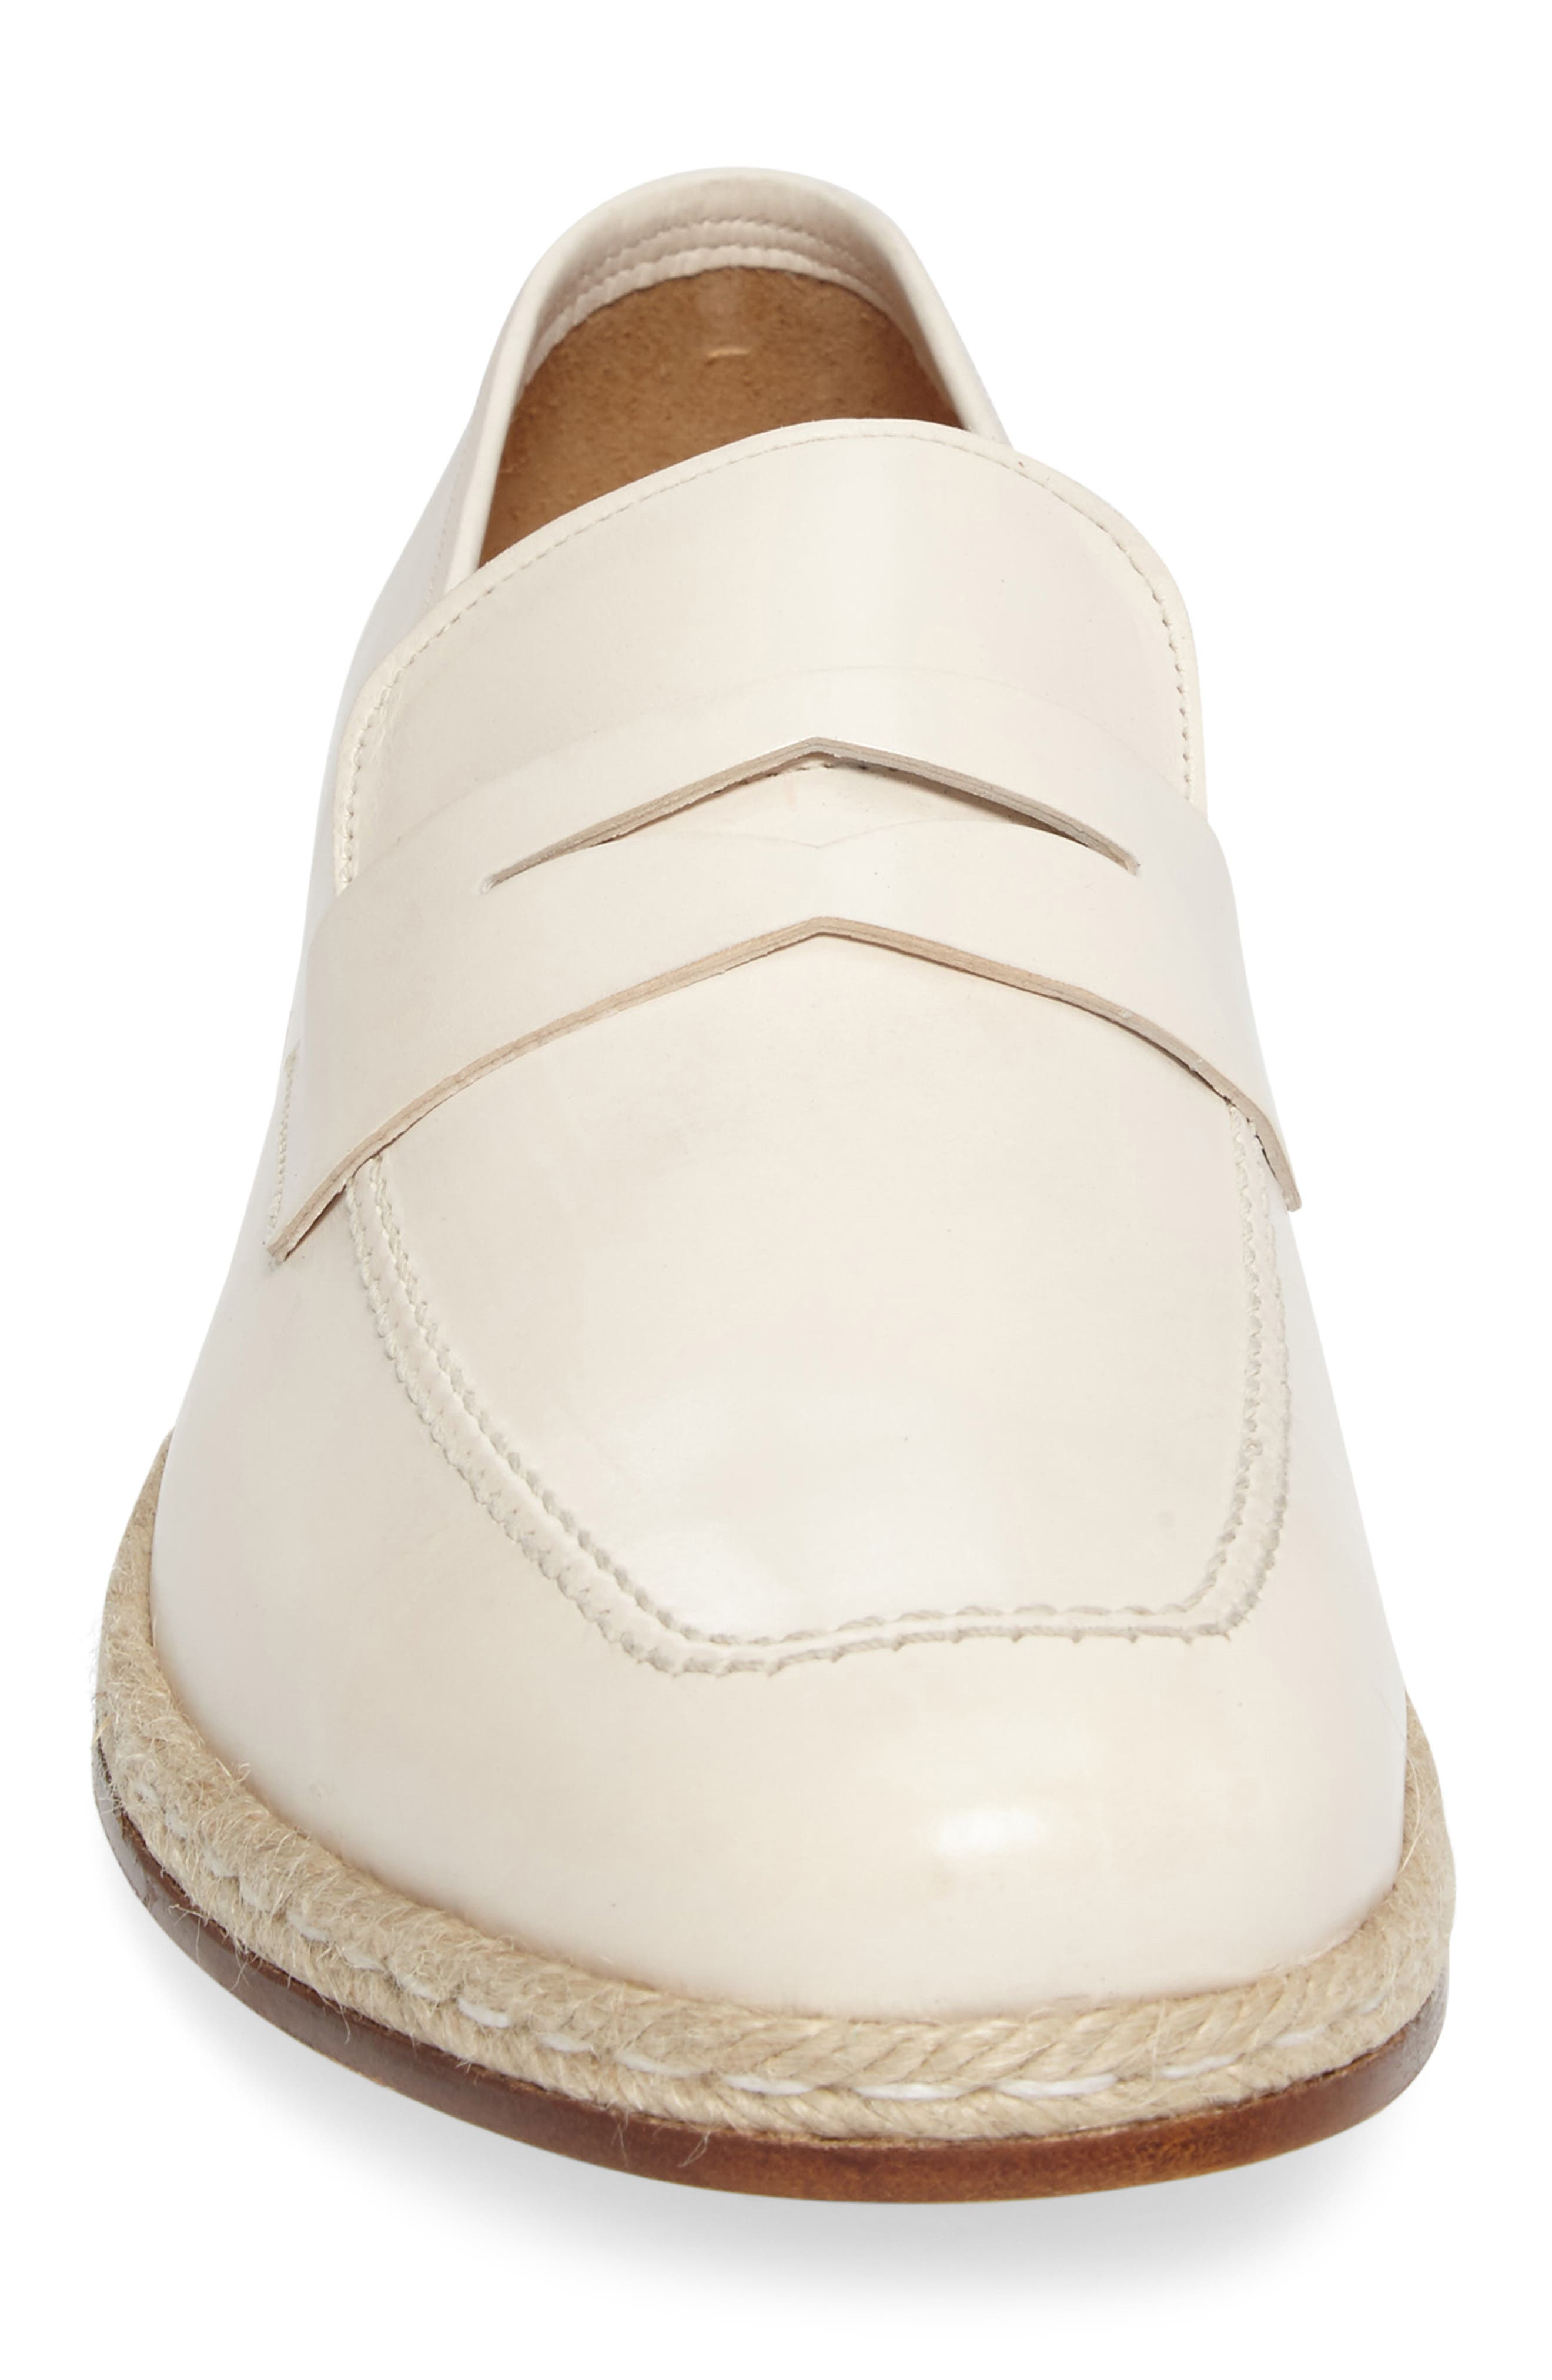 Battani Penny Loafer,                             Alternate thumbnail 4, color,                             BONE LEATHER